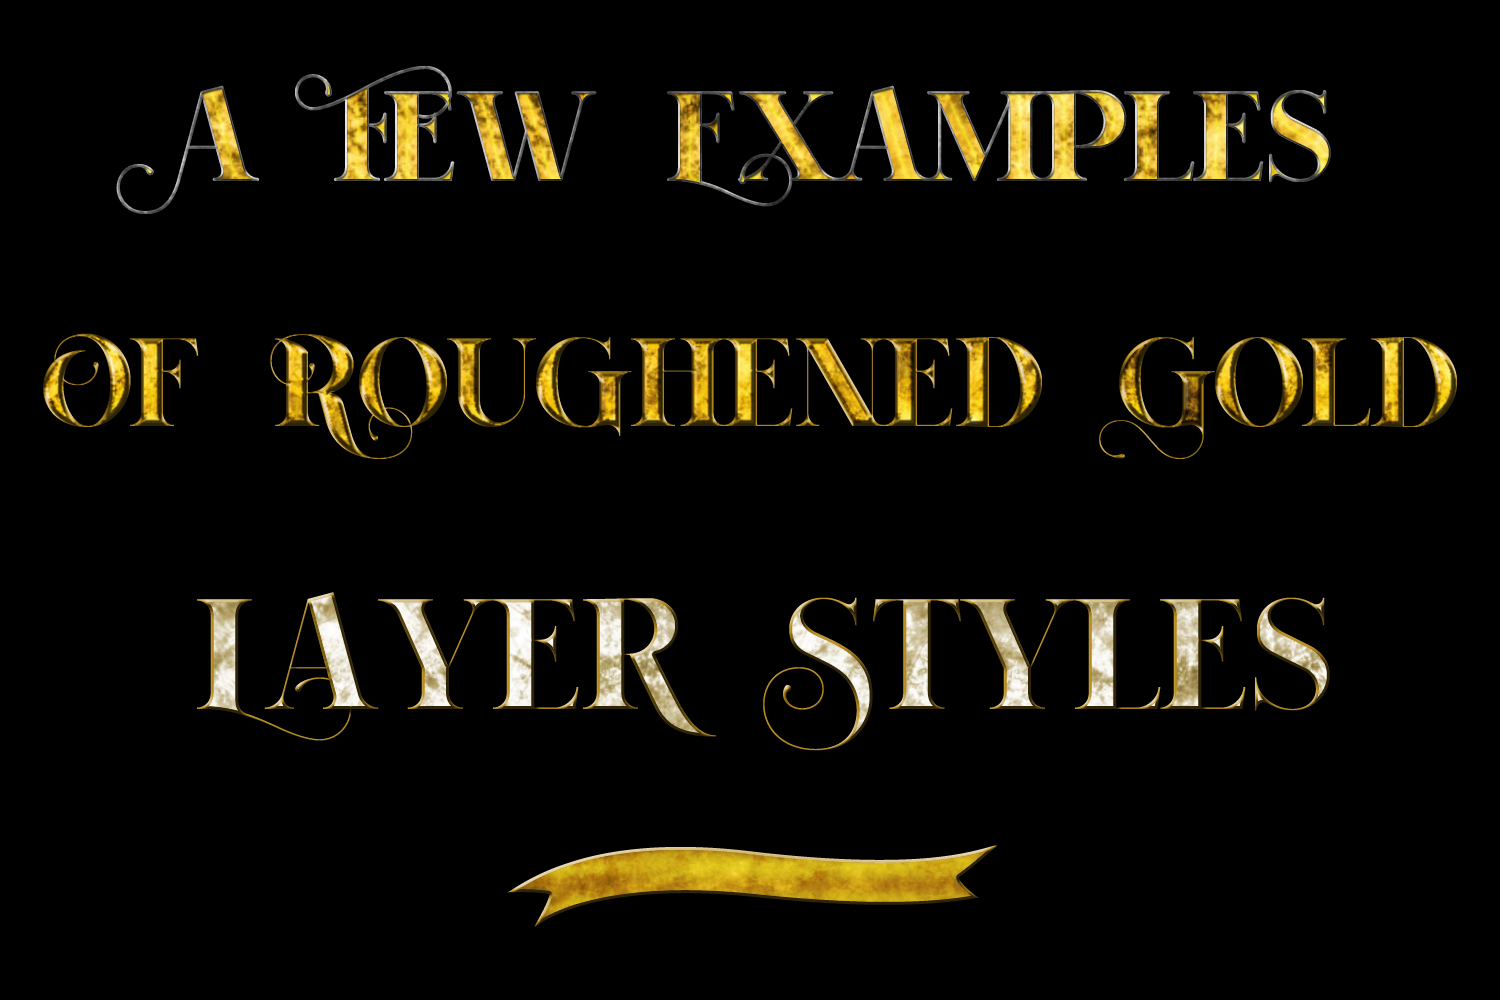 20 Roughened Gold Metallic Layer Styles for Photoshop example image 2